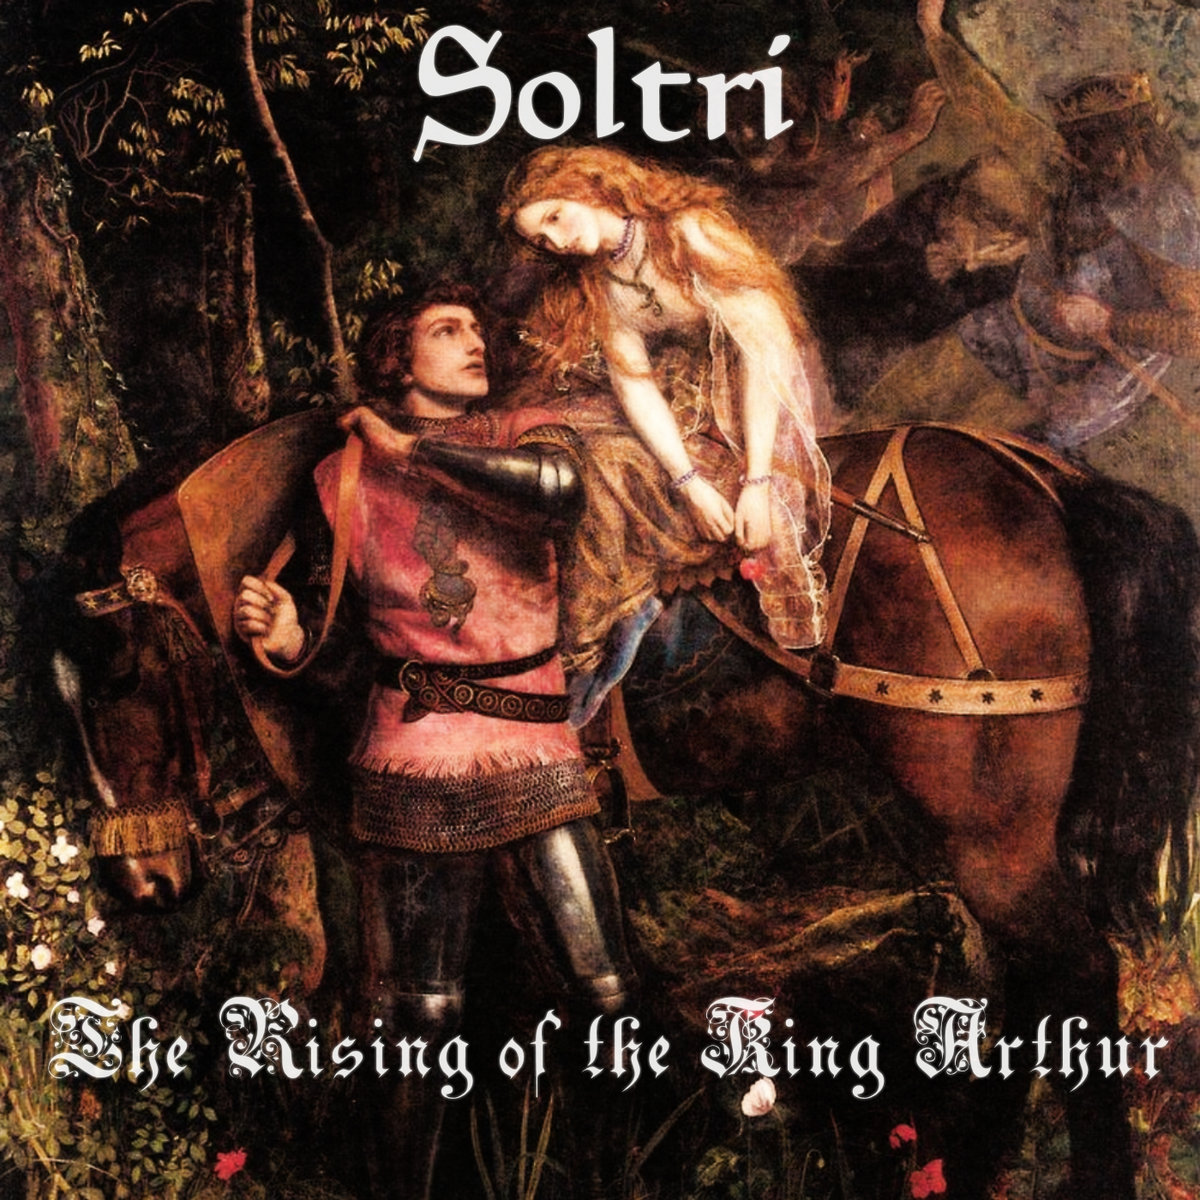 the rising of the king arthur soltri